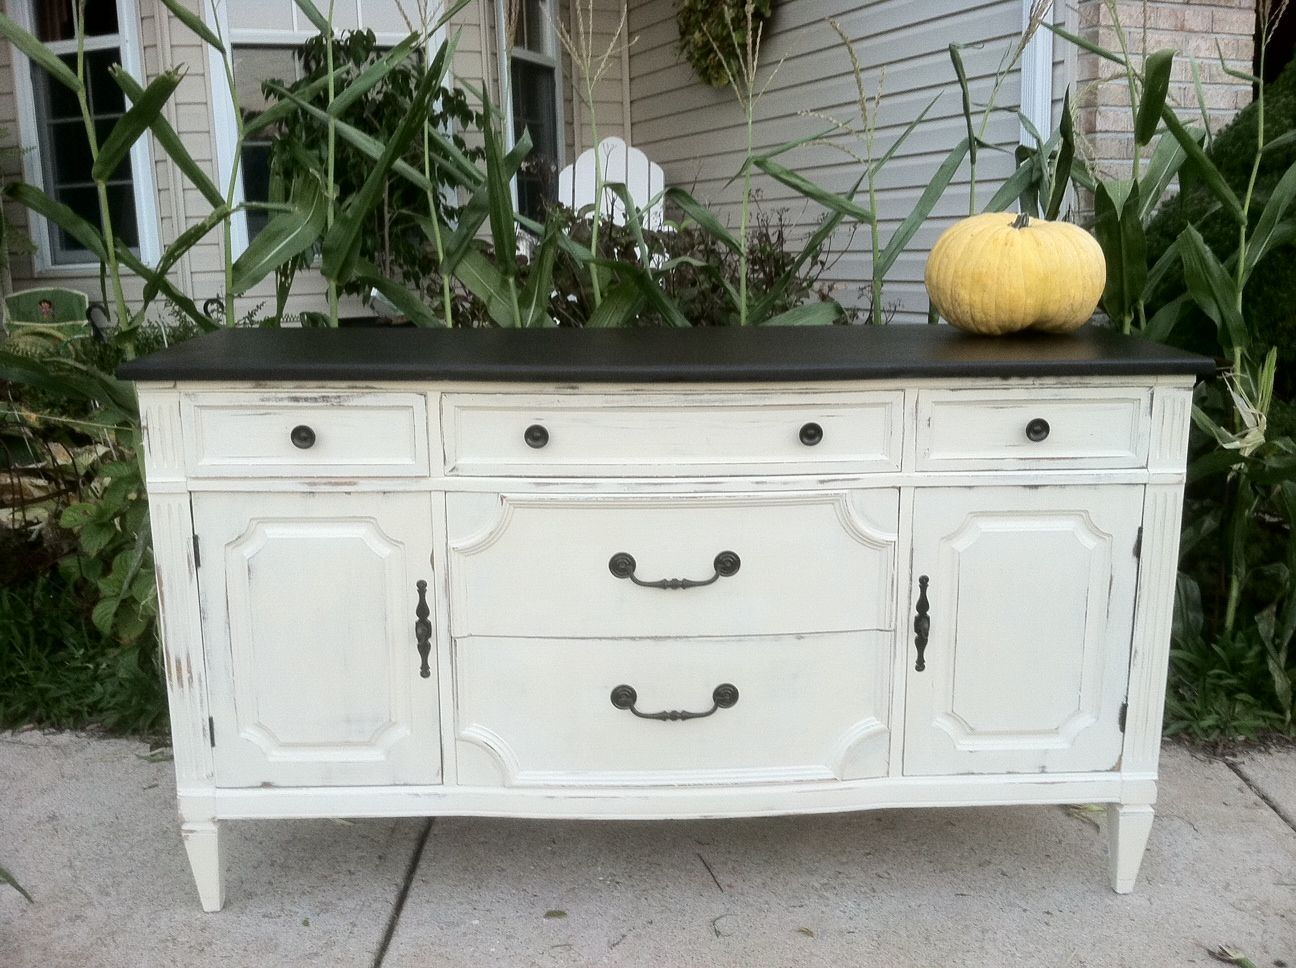 Repurposed Furniture For Sale Do You Have Something You